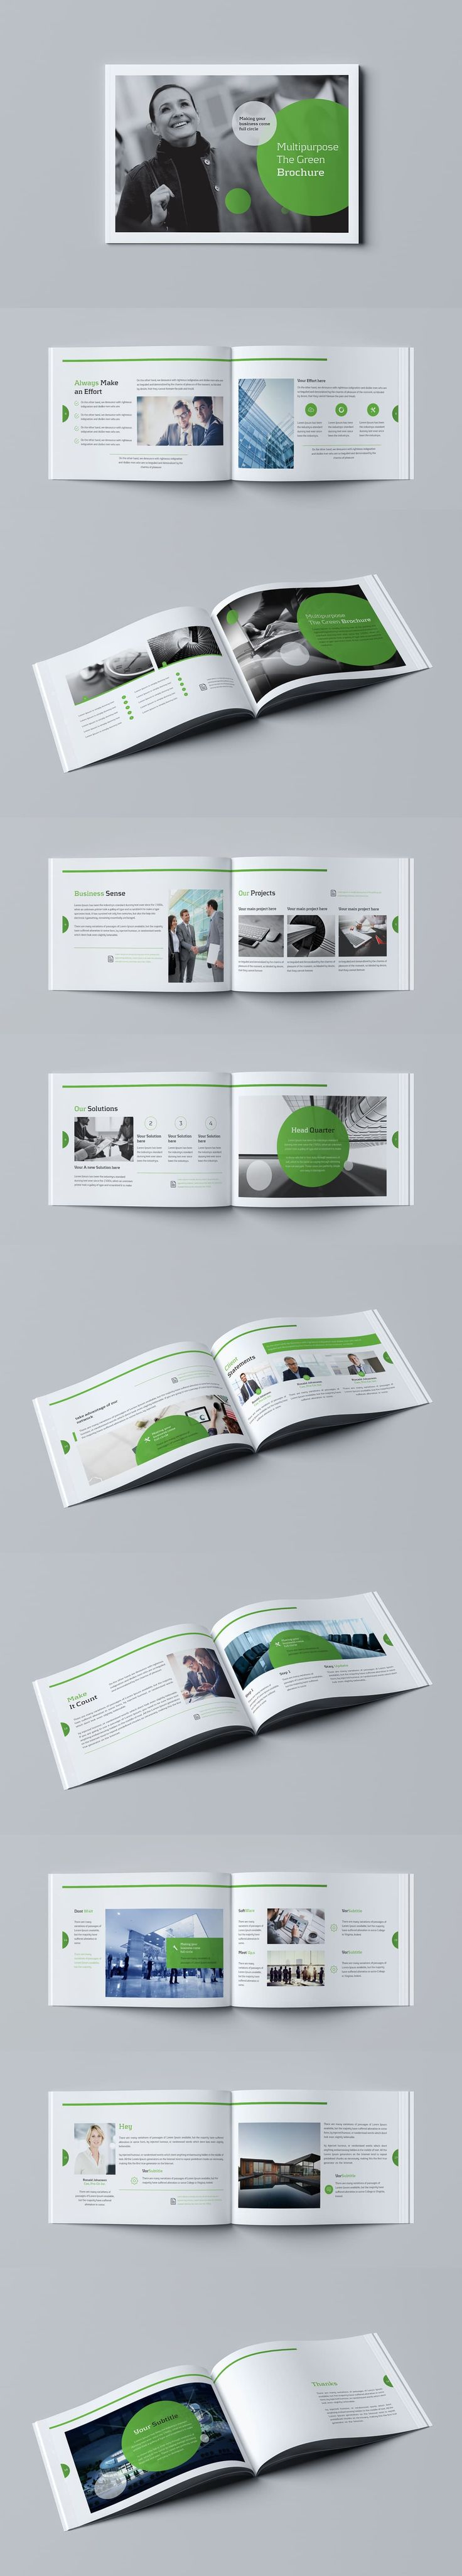 Professional, Clean and Modern 20 Pages Corporate Business Brochure Template InDesign INDD